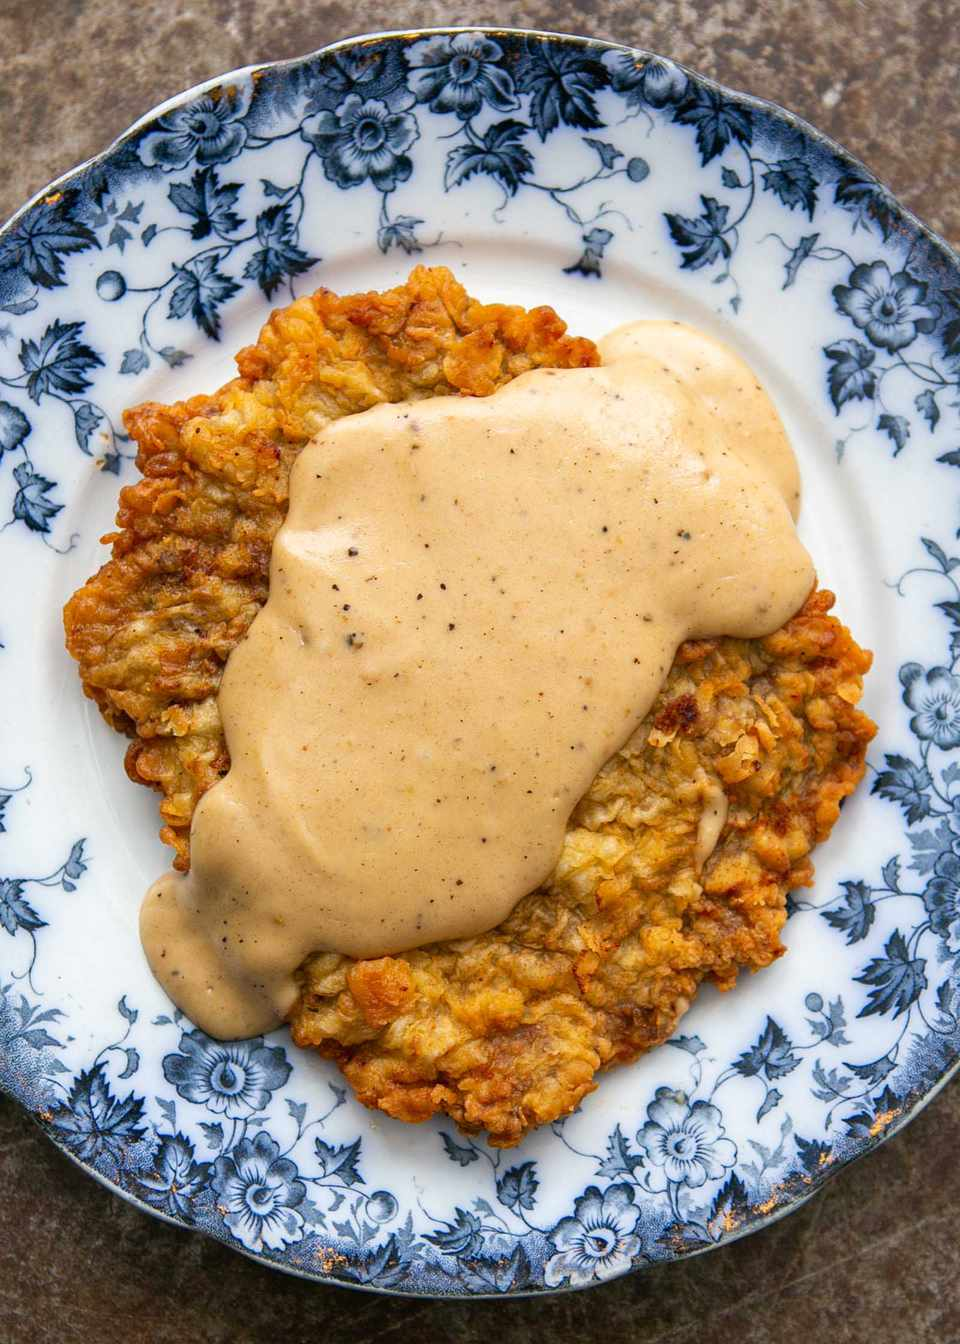 Homemade country fried steak with gravy on a plate